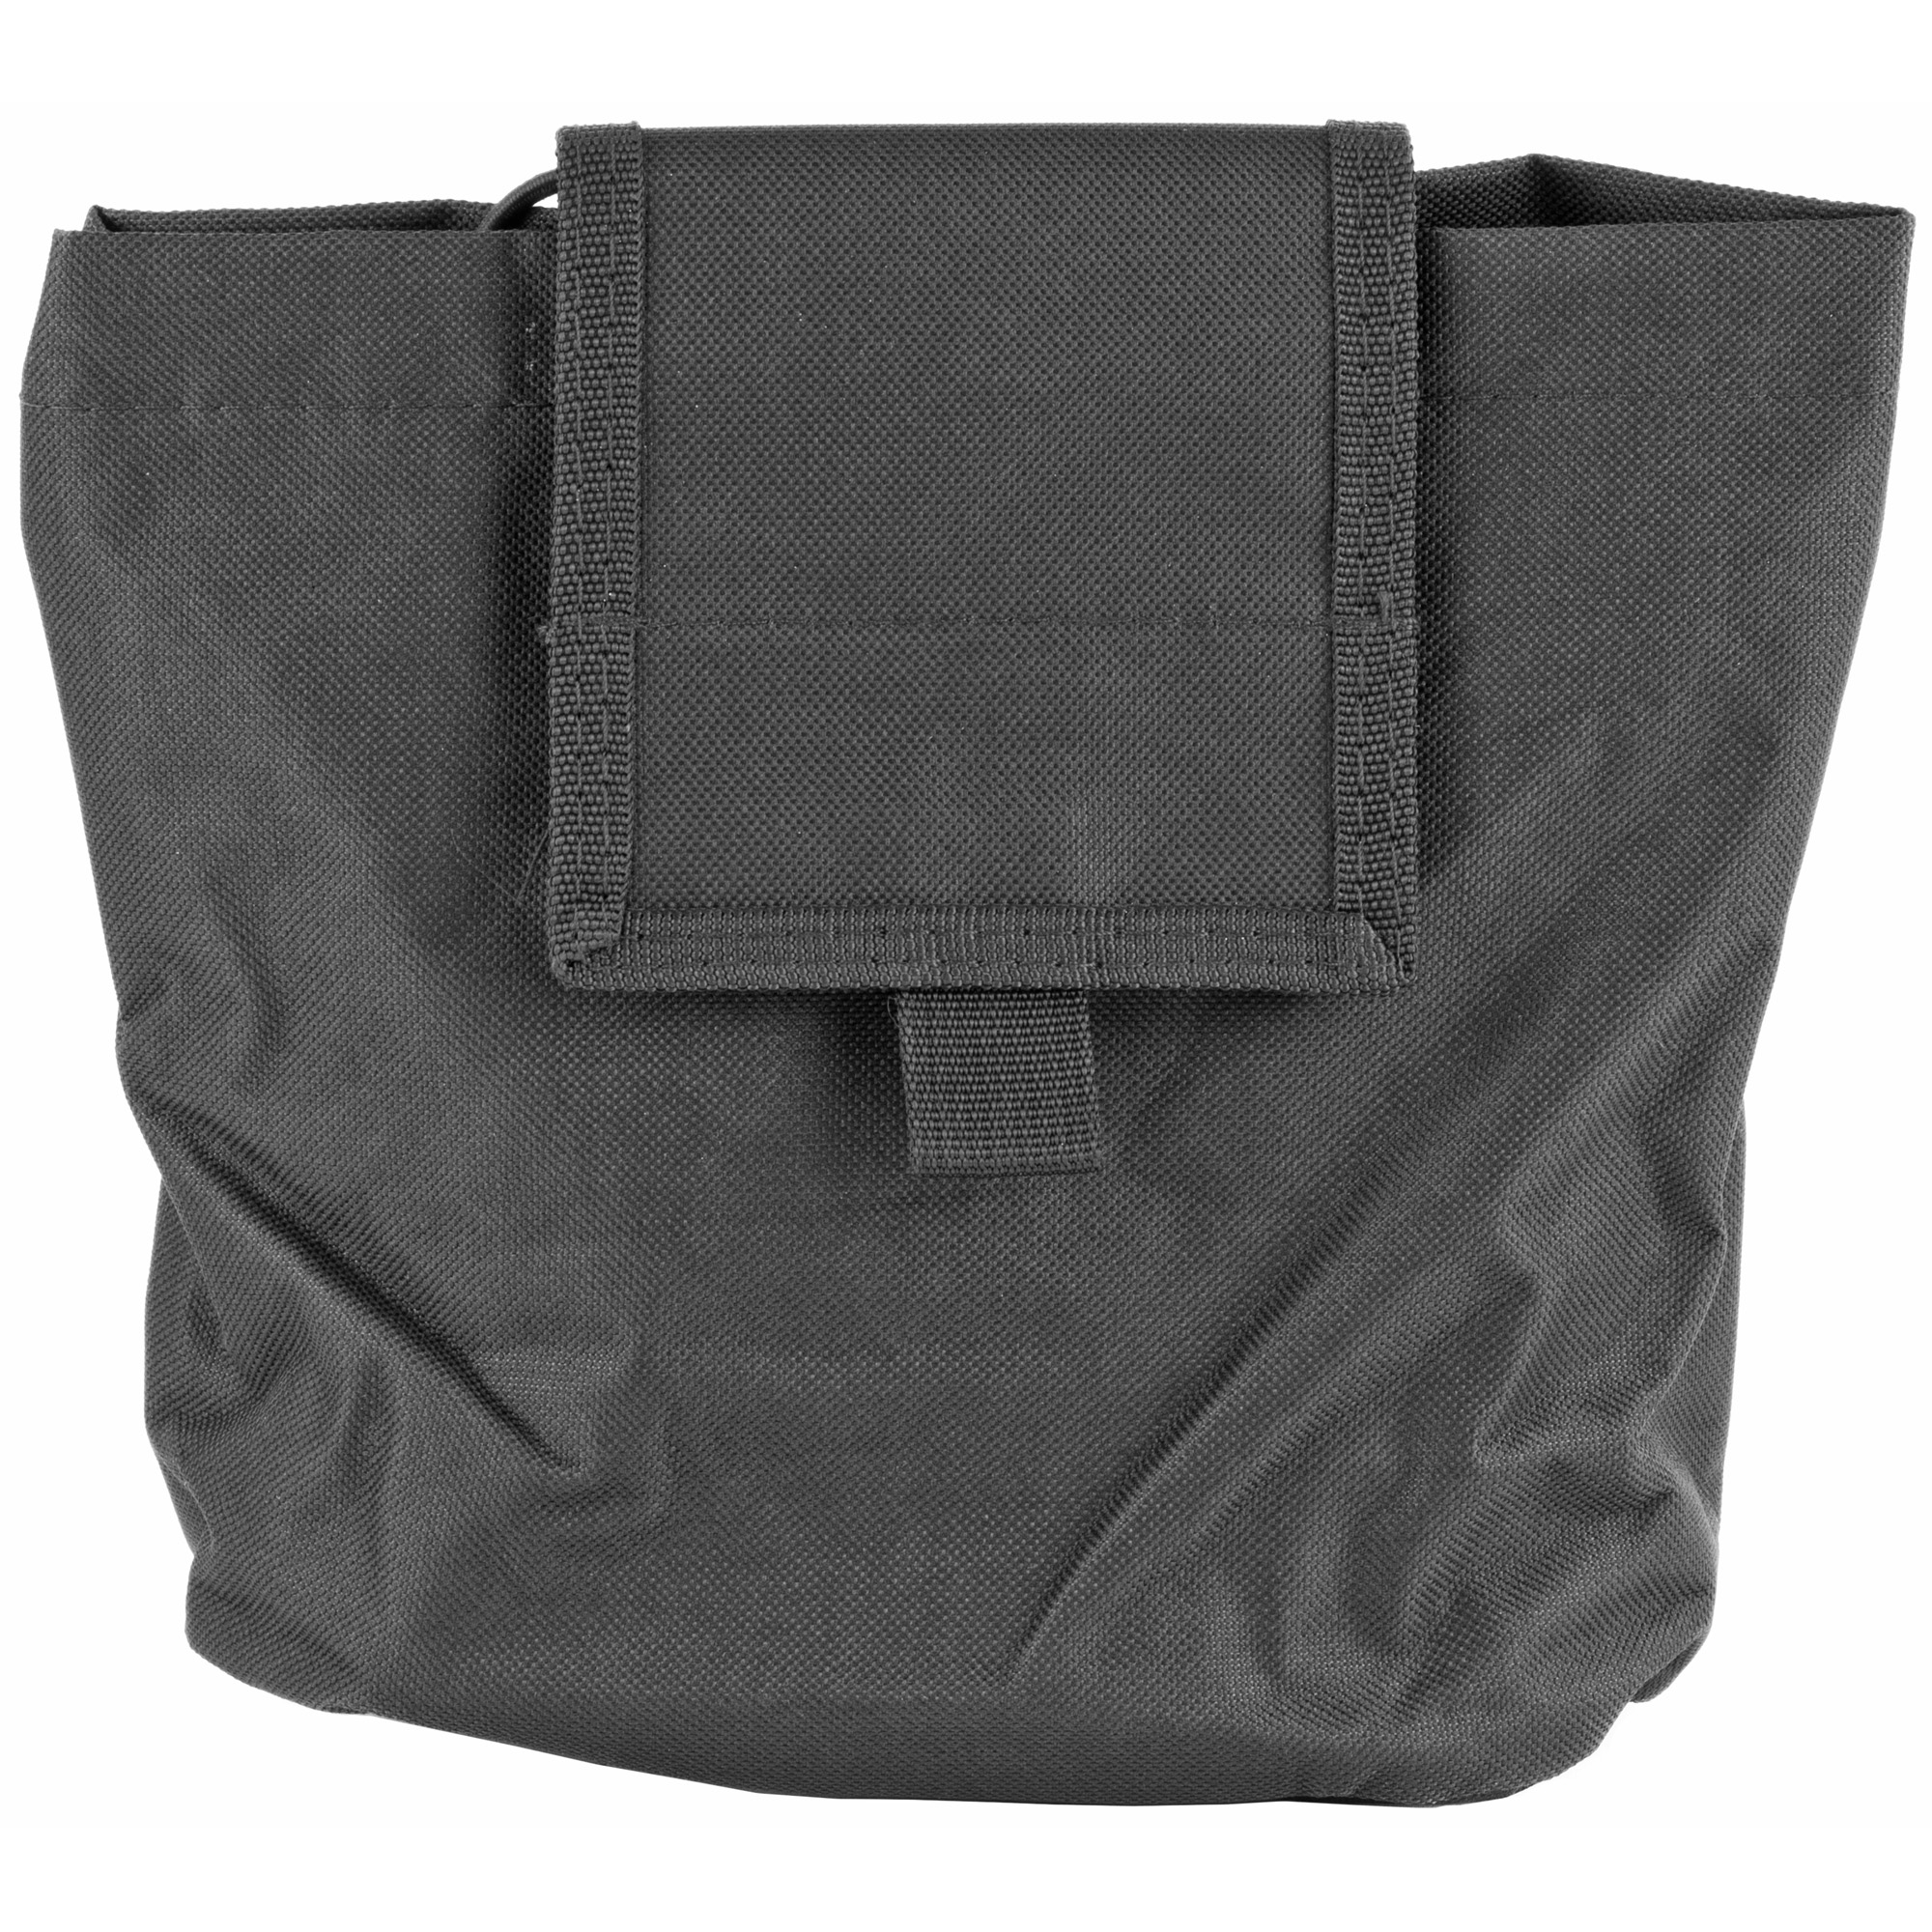 The New VISM Folding Dump Pouch allows you to quickly store your Shooting Gear into a convenient pouch when you need it. The Dump Pouch folds flat into a compact size when not in use. When unfolded it is a large pouch that is able to hold 7 AR or AK 30 round magazines.